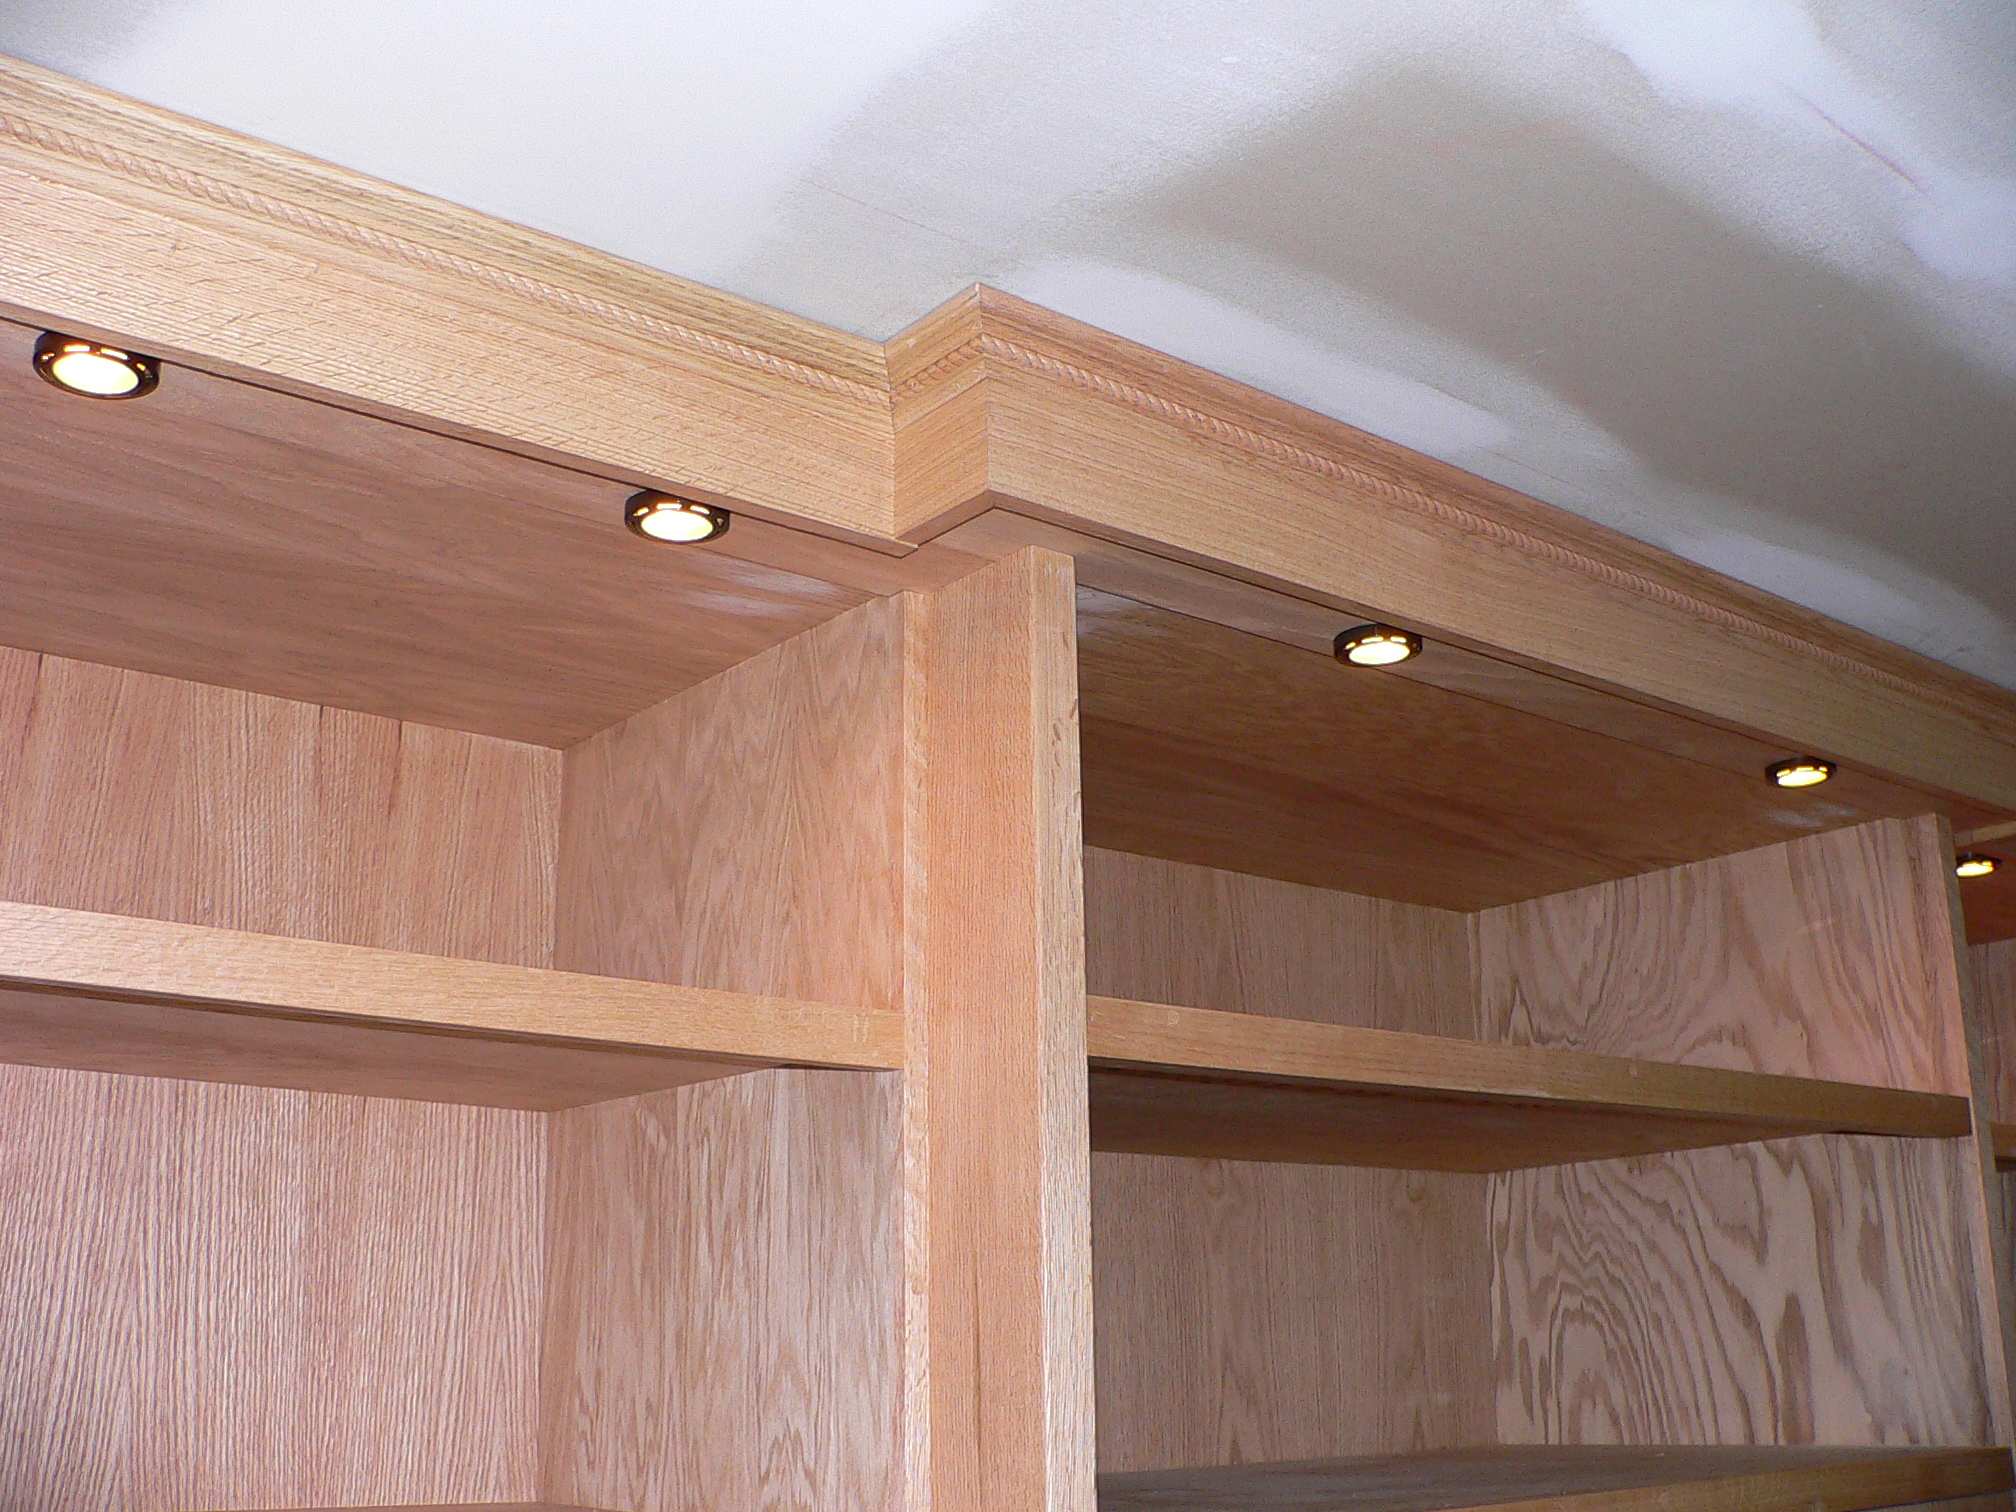 red oak bookcases 007.jpg